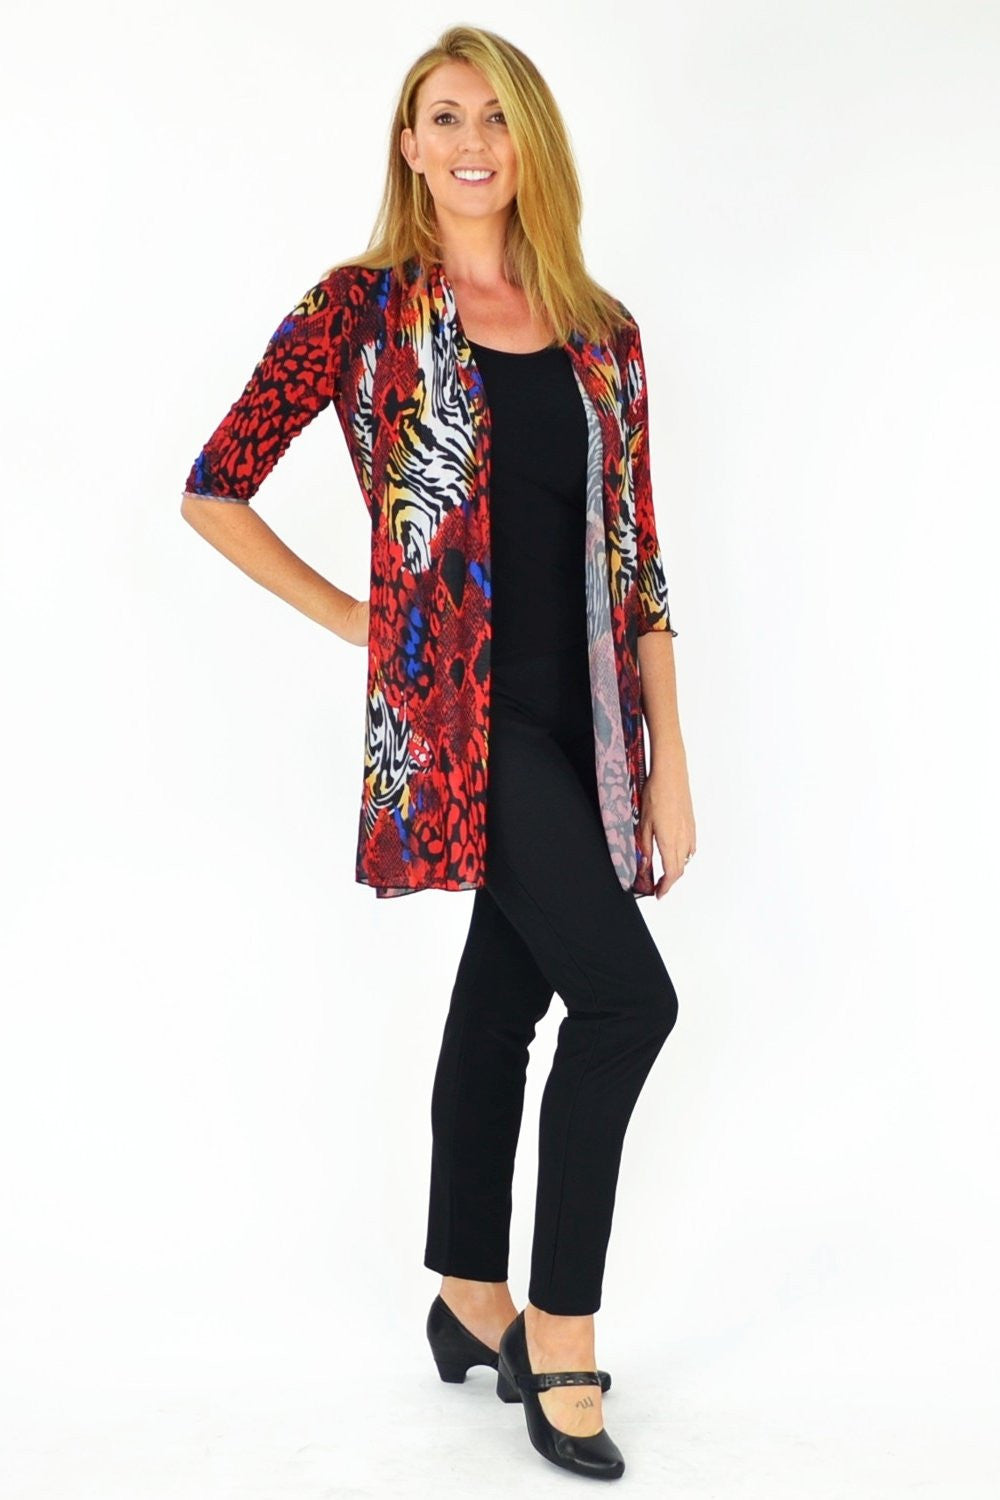 Red Animal Print Cardigan - at I Love Tunics @ www.ilovetunics.com = Number One! Tunics Destination